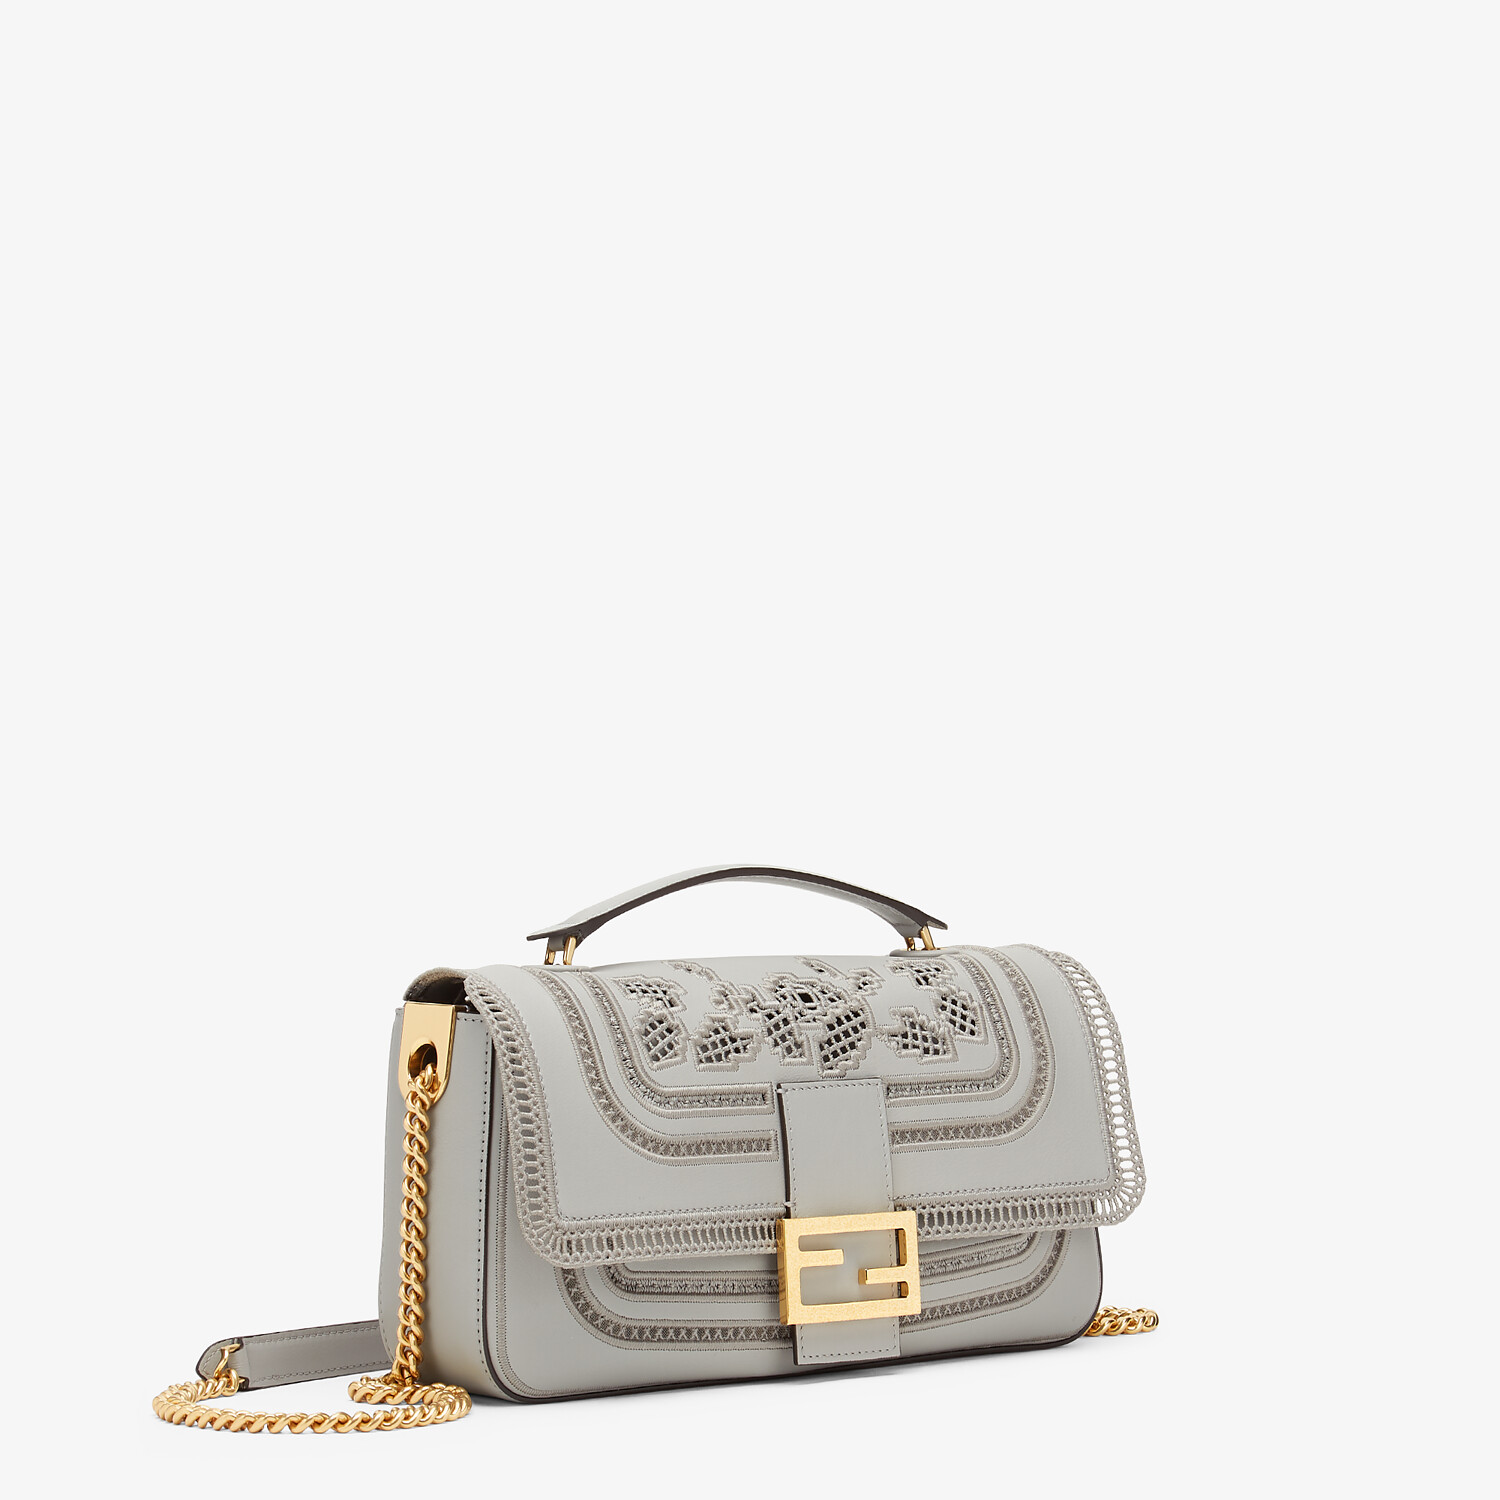 FENDI BAGUETTE CHAIN - Embroidered gray leather bag - view 2 detail